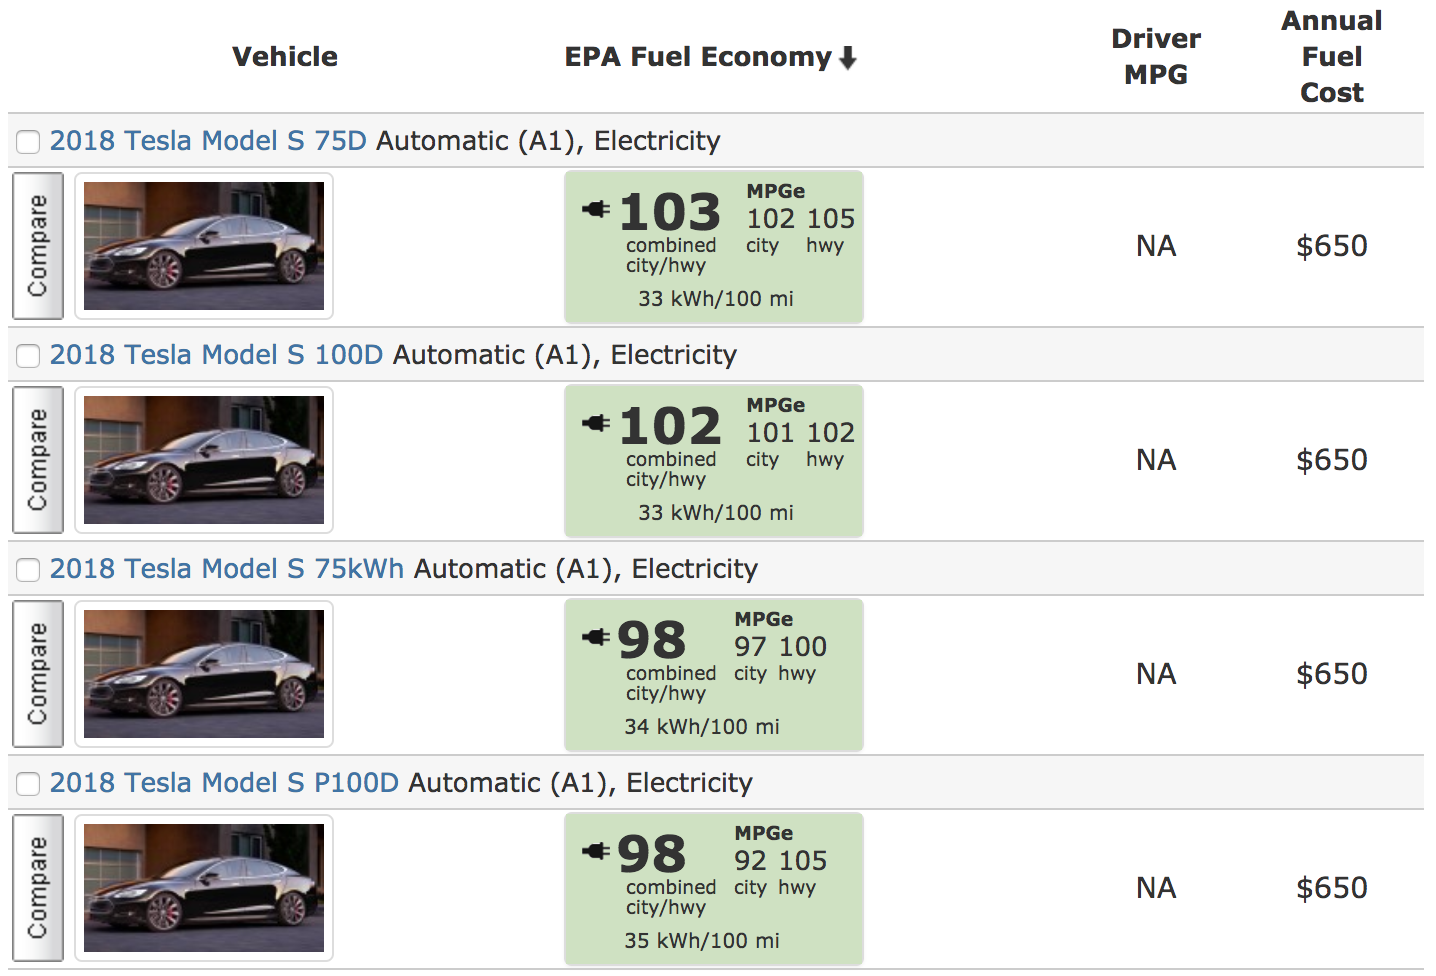 The Tesla Model S 75 For Example Achieves An Epa Fuel Economy Rating Of 98 Mpge While All Wheel Drive 75d A 103